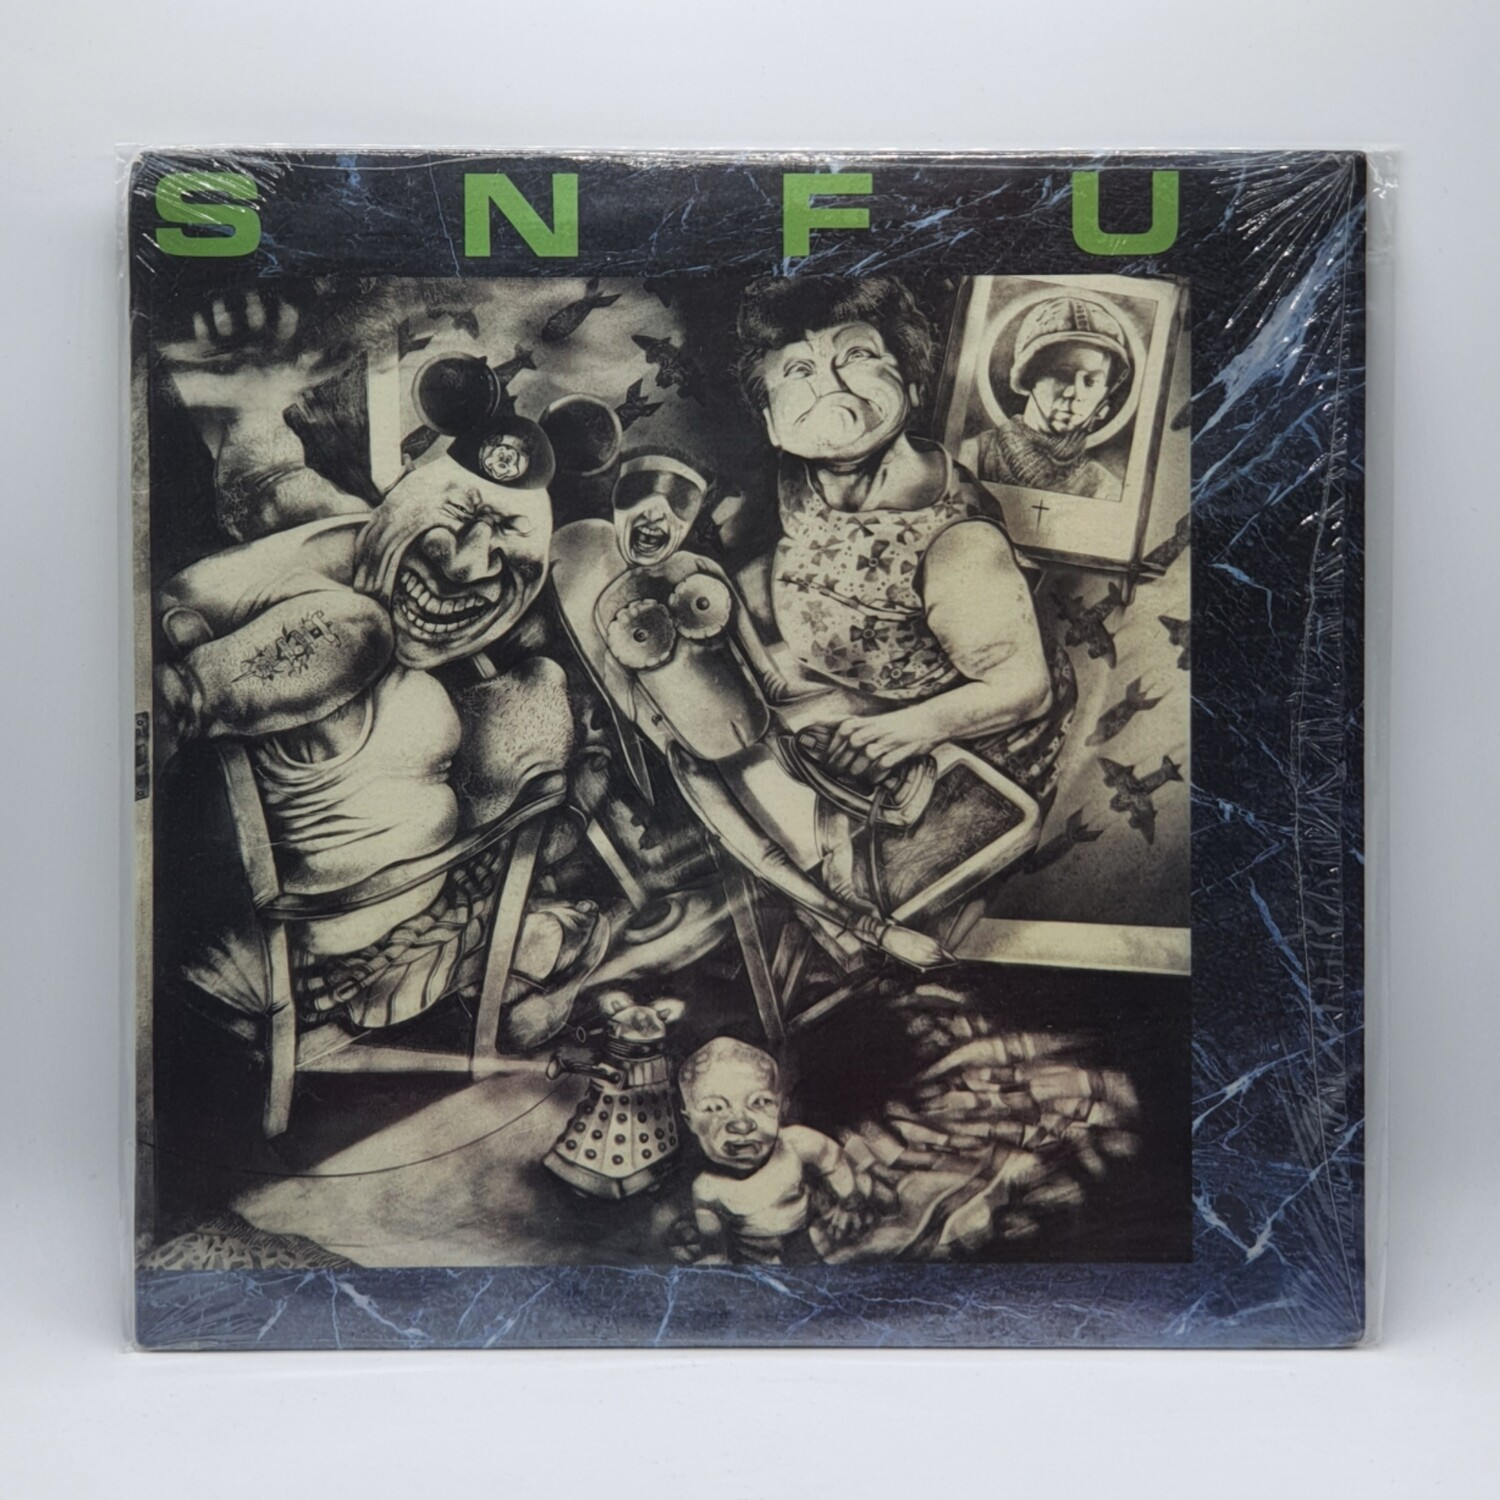 SNFU -BETTER THAN A STICK IN THE EYE- LP